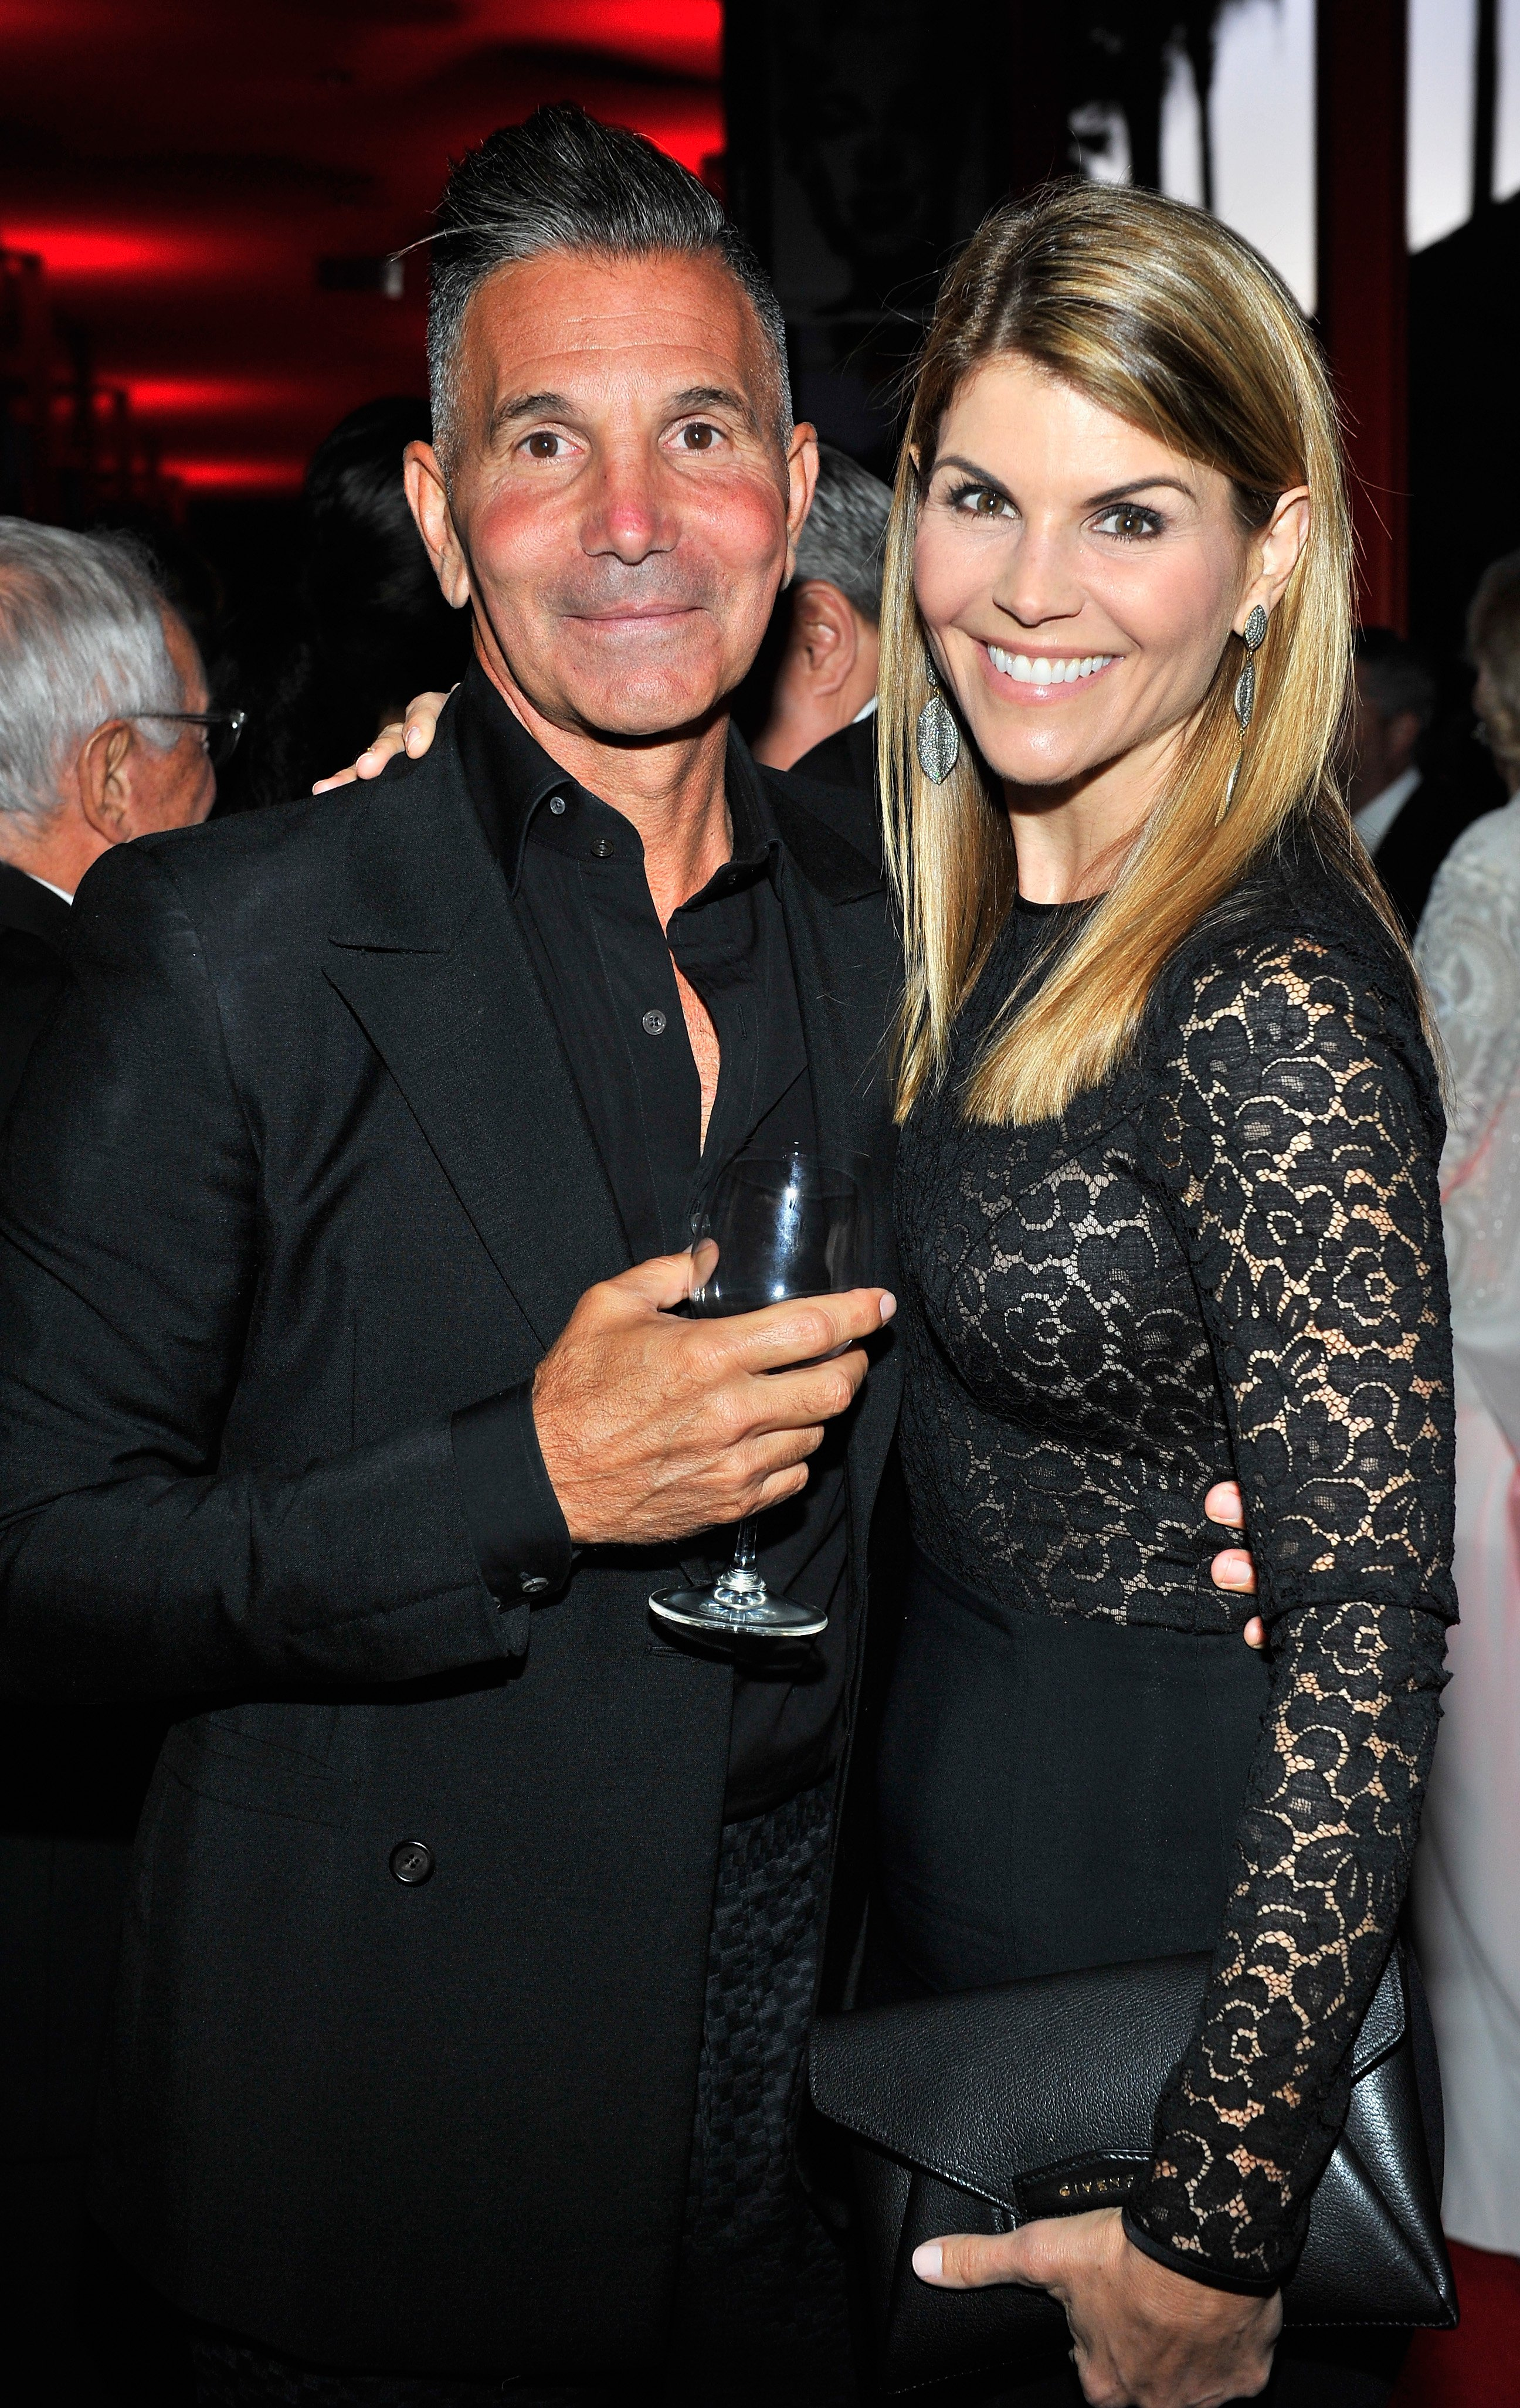 Mossimo Giannulli and Lori Loughlin attend LACMA's 50th Anniversary Gala on April 18, 2015, in Los Angeles, California.  Source: Getty Images.